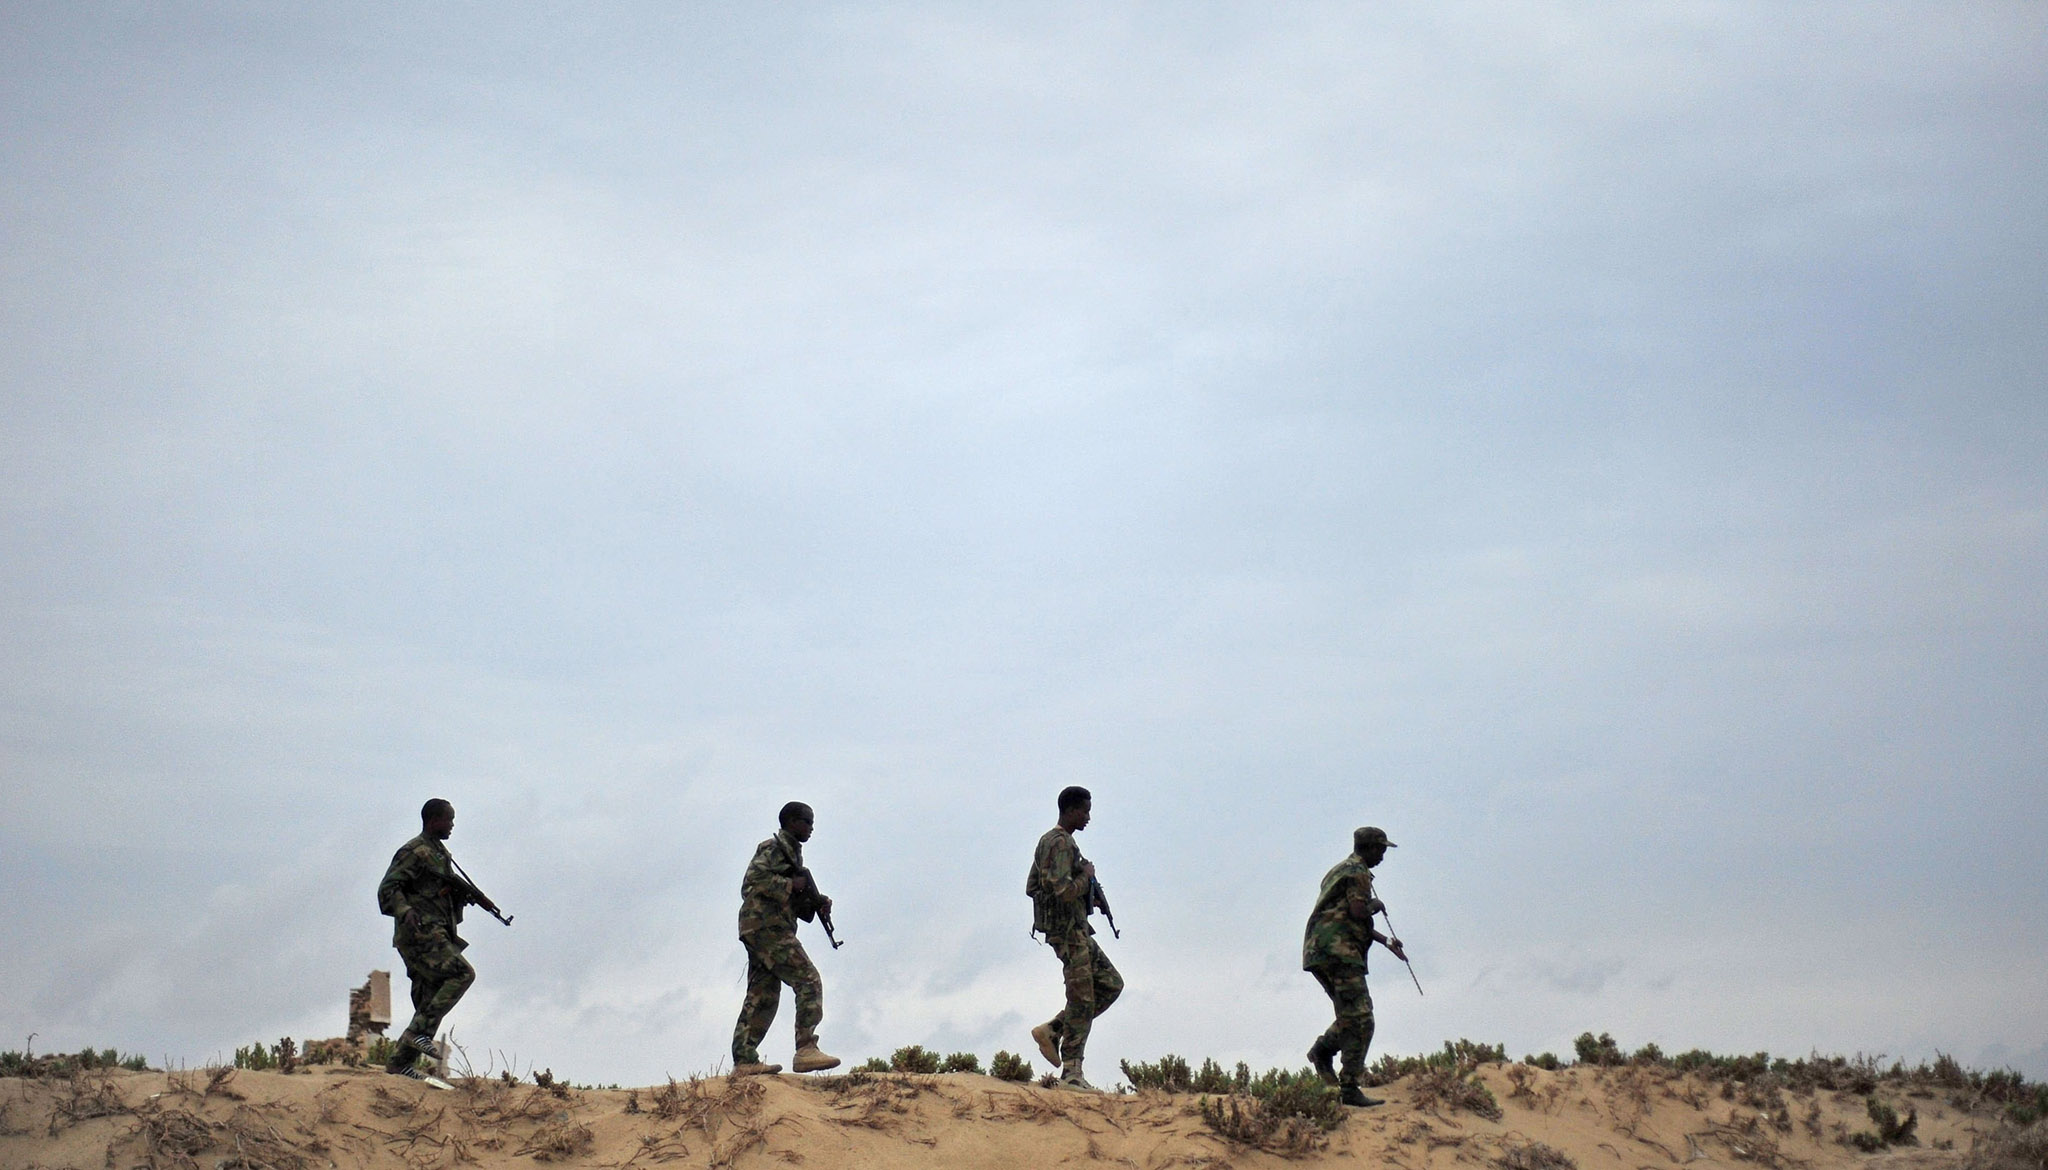 Somali security forces patrol along the coast of Qaw, in Puntland, northeastern Somalia on December, 18, 2016. Armed militants groups have become more active in the Puntland's region, northern Somalia, since being pushed out of their strongholds in southern Somalia by African Union forces and the Somali National Army. / AFP PHOTO / Mohamed ABDIWAHABMOHAMED ABDIWAHAB/AFP/Getty Images